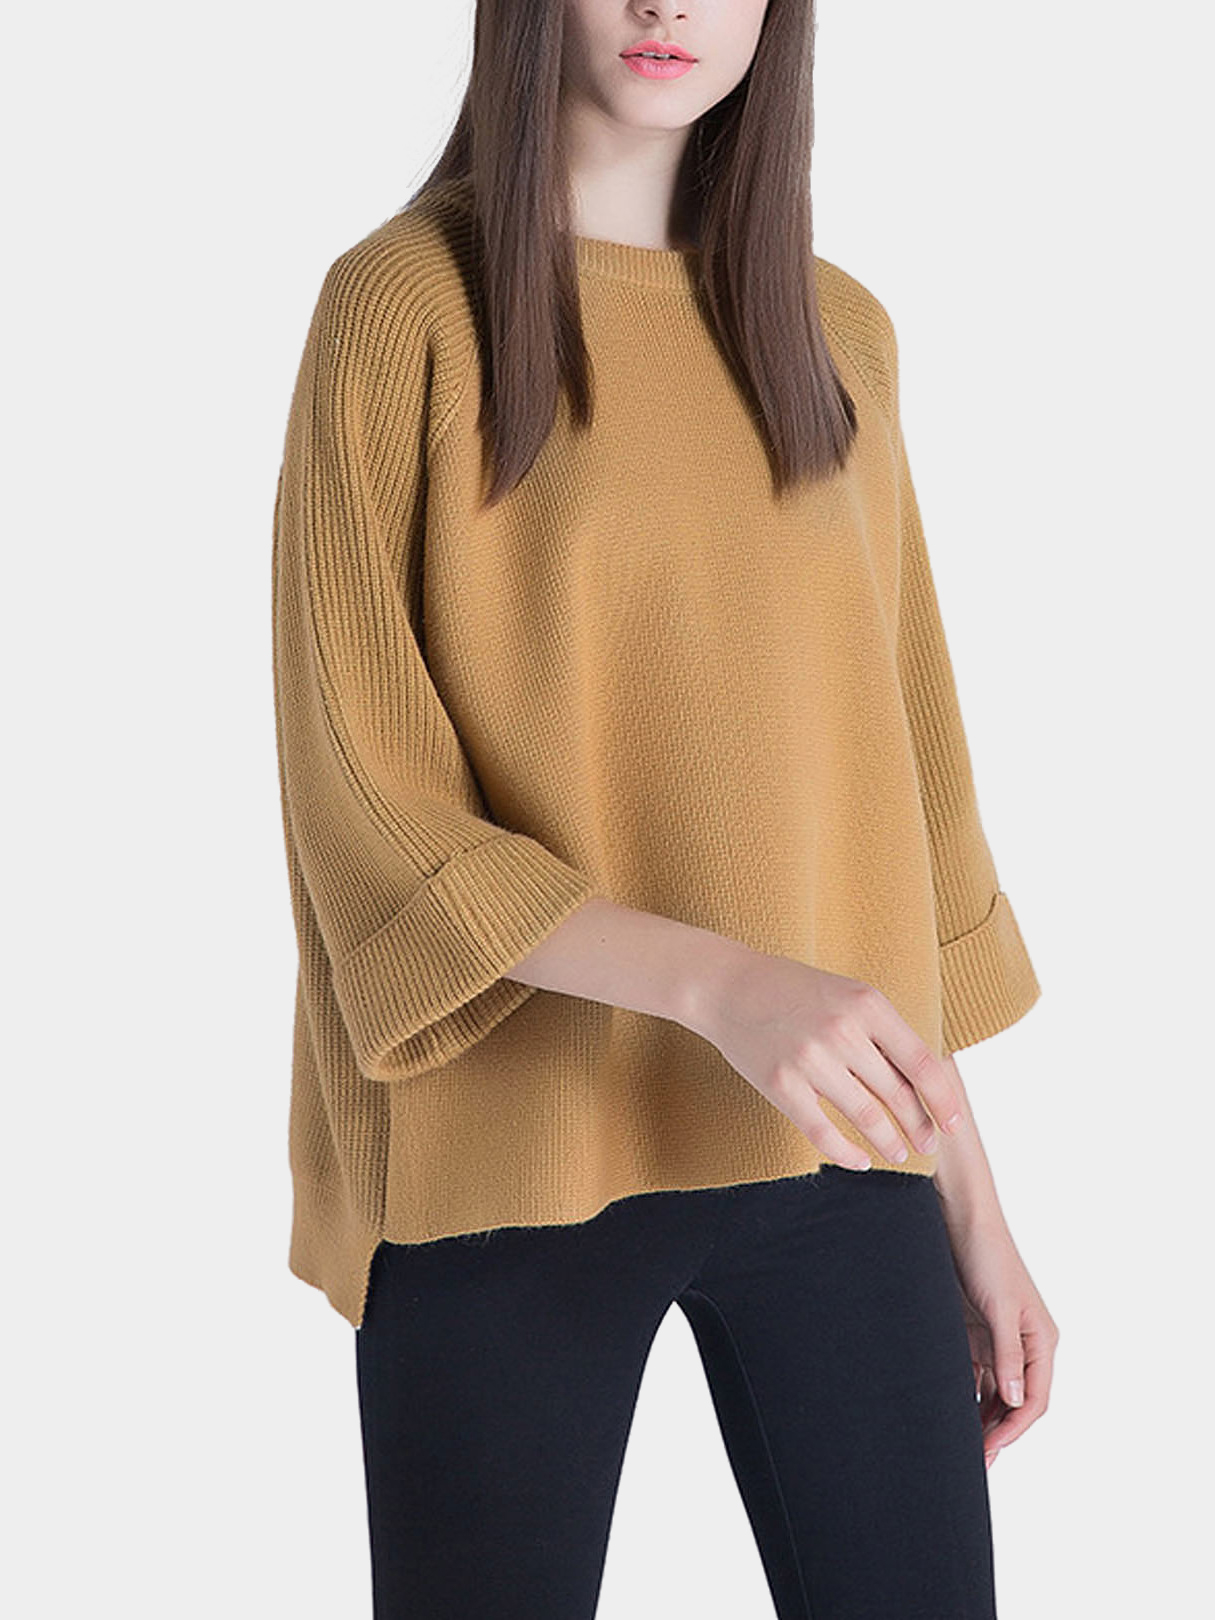 a3ca32debc7f39 3 4 Length Sleeves High-low Hem Knitted Jumper in Light Tan - US ...